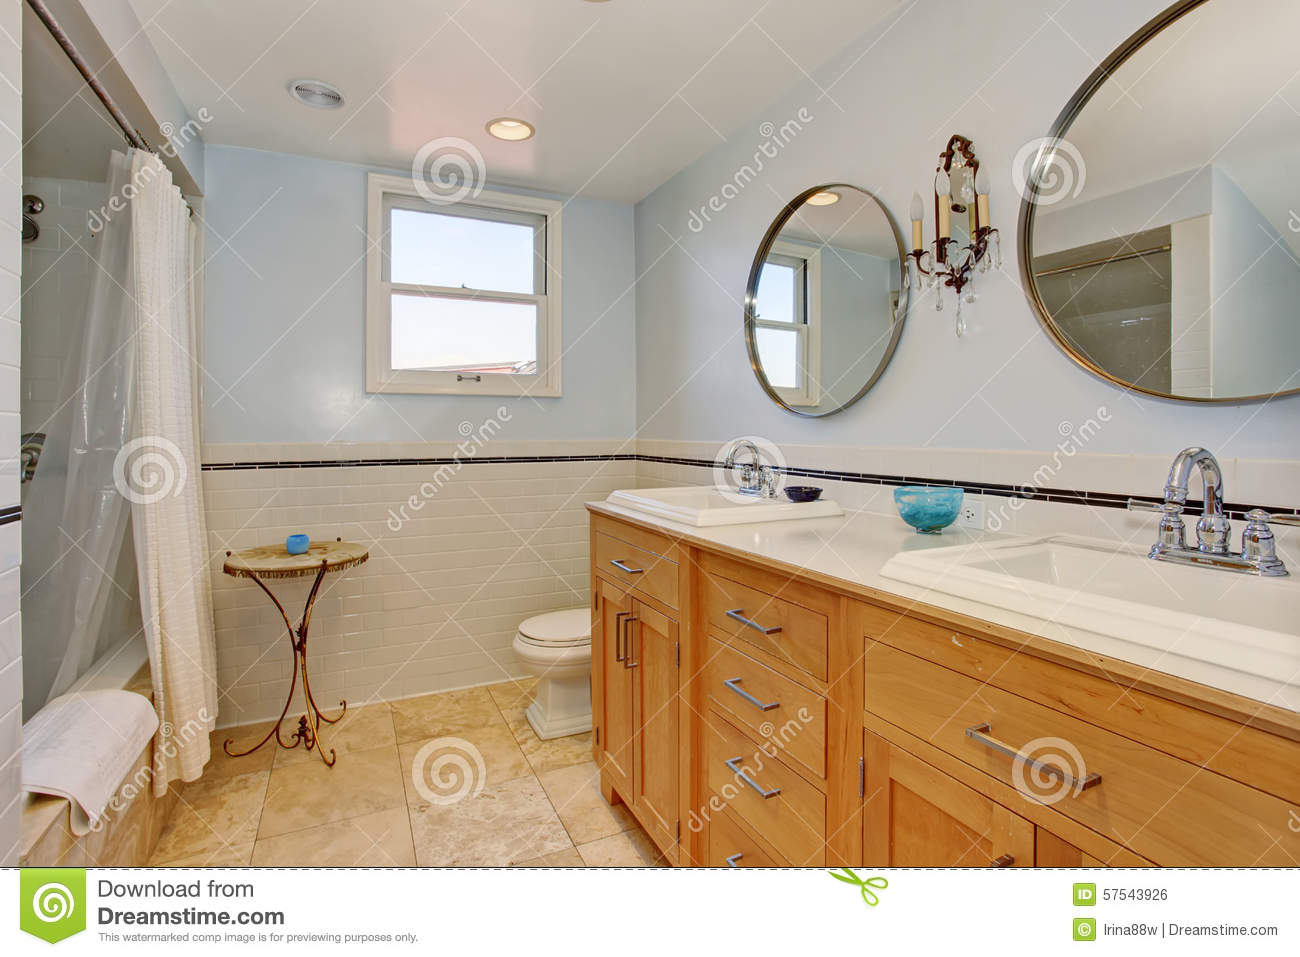 Modern Bathroom With Two Oval Mirrors And White Shower Curtain